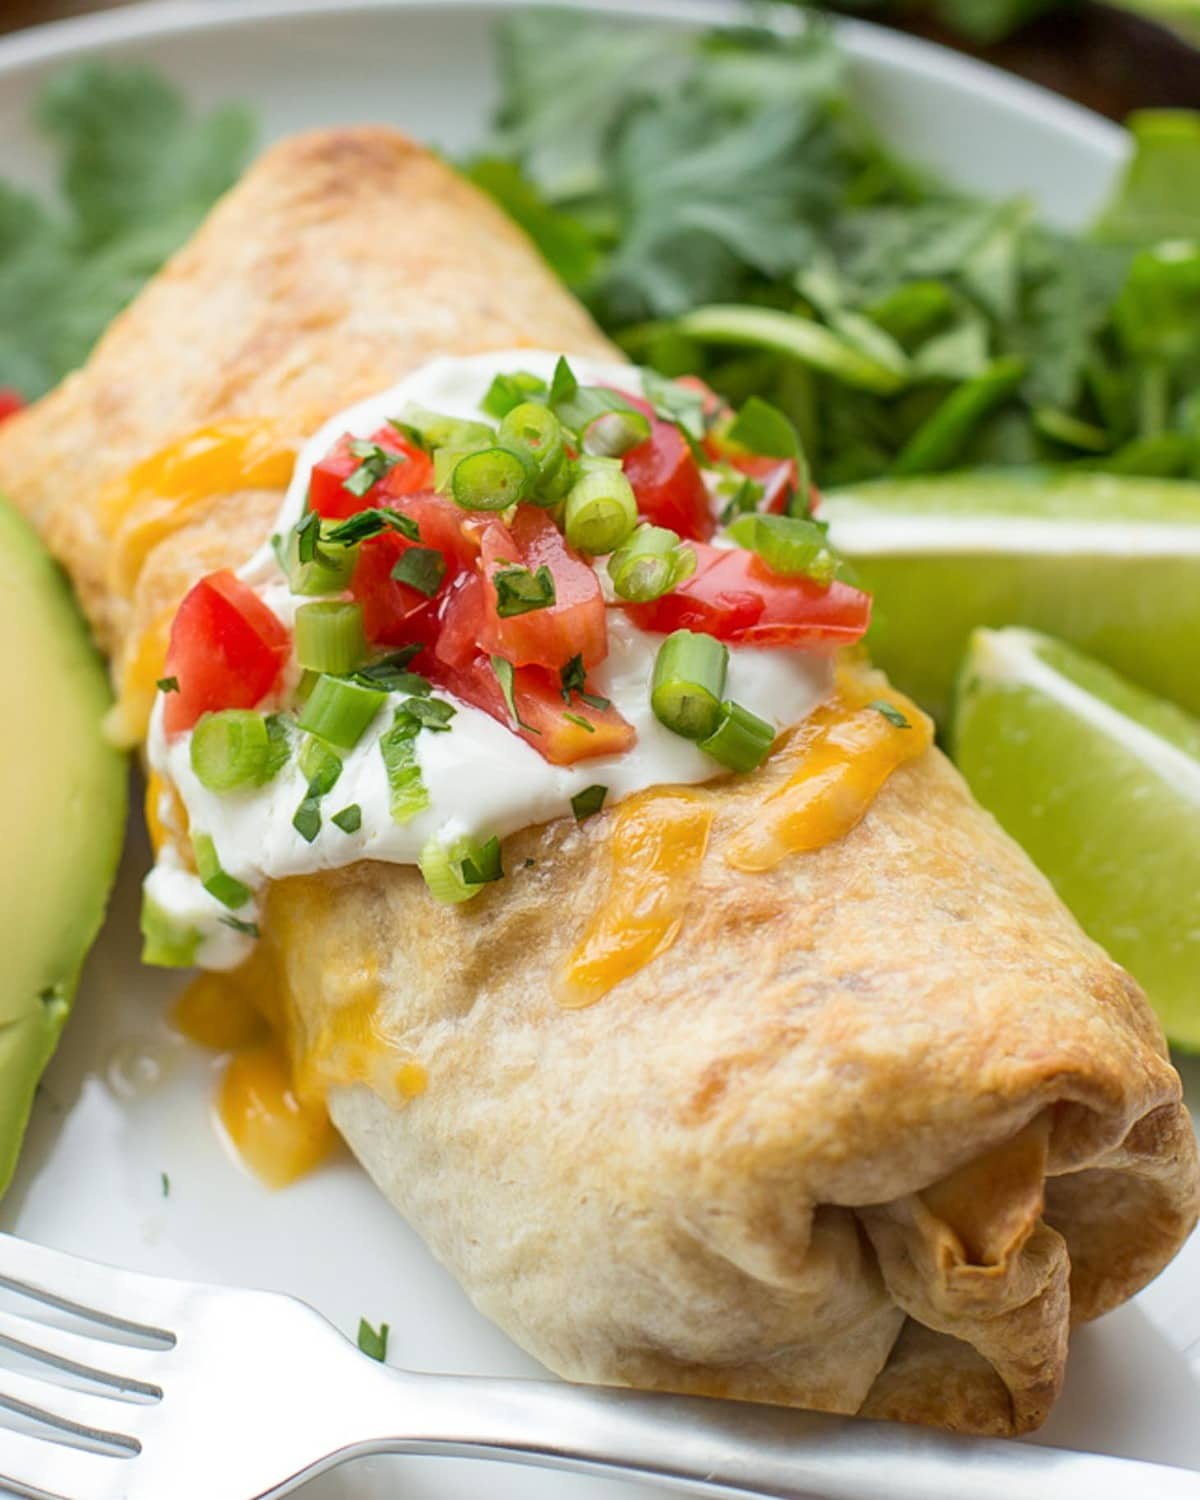 Chimichanga Recipe on plate